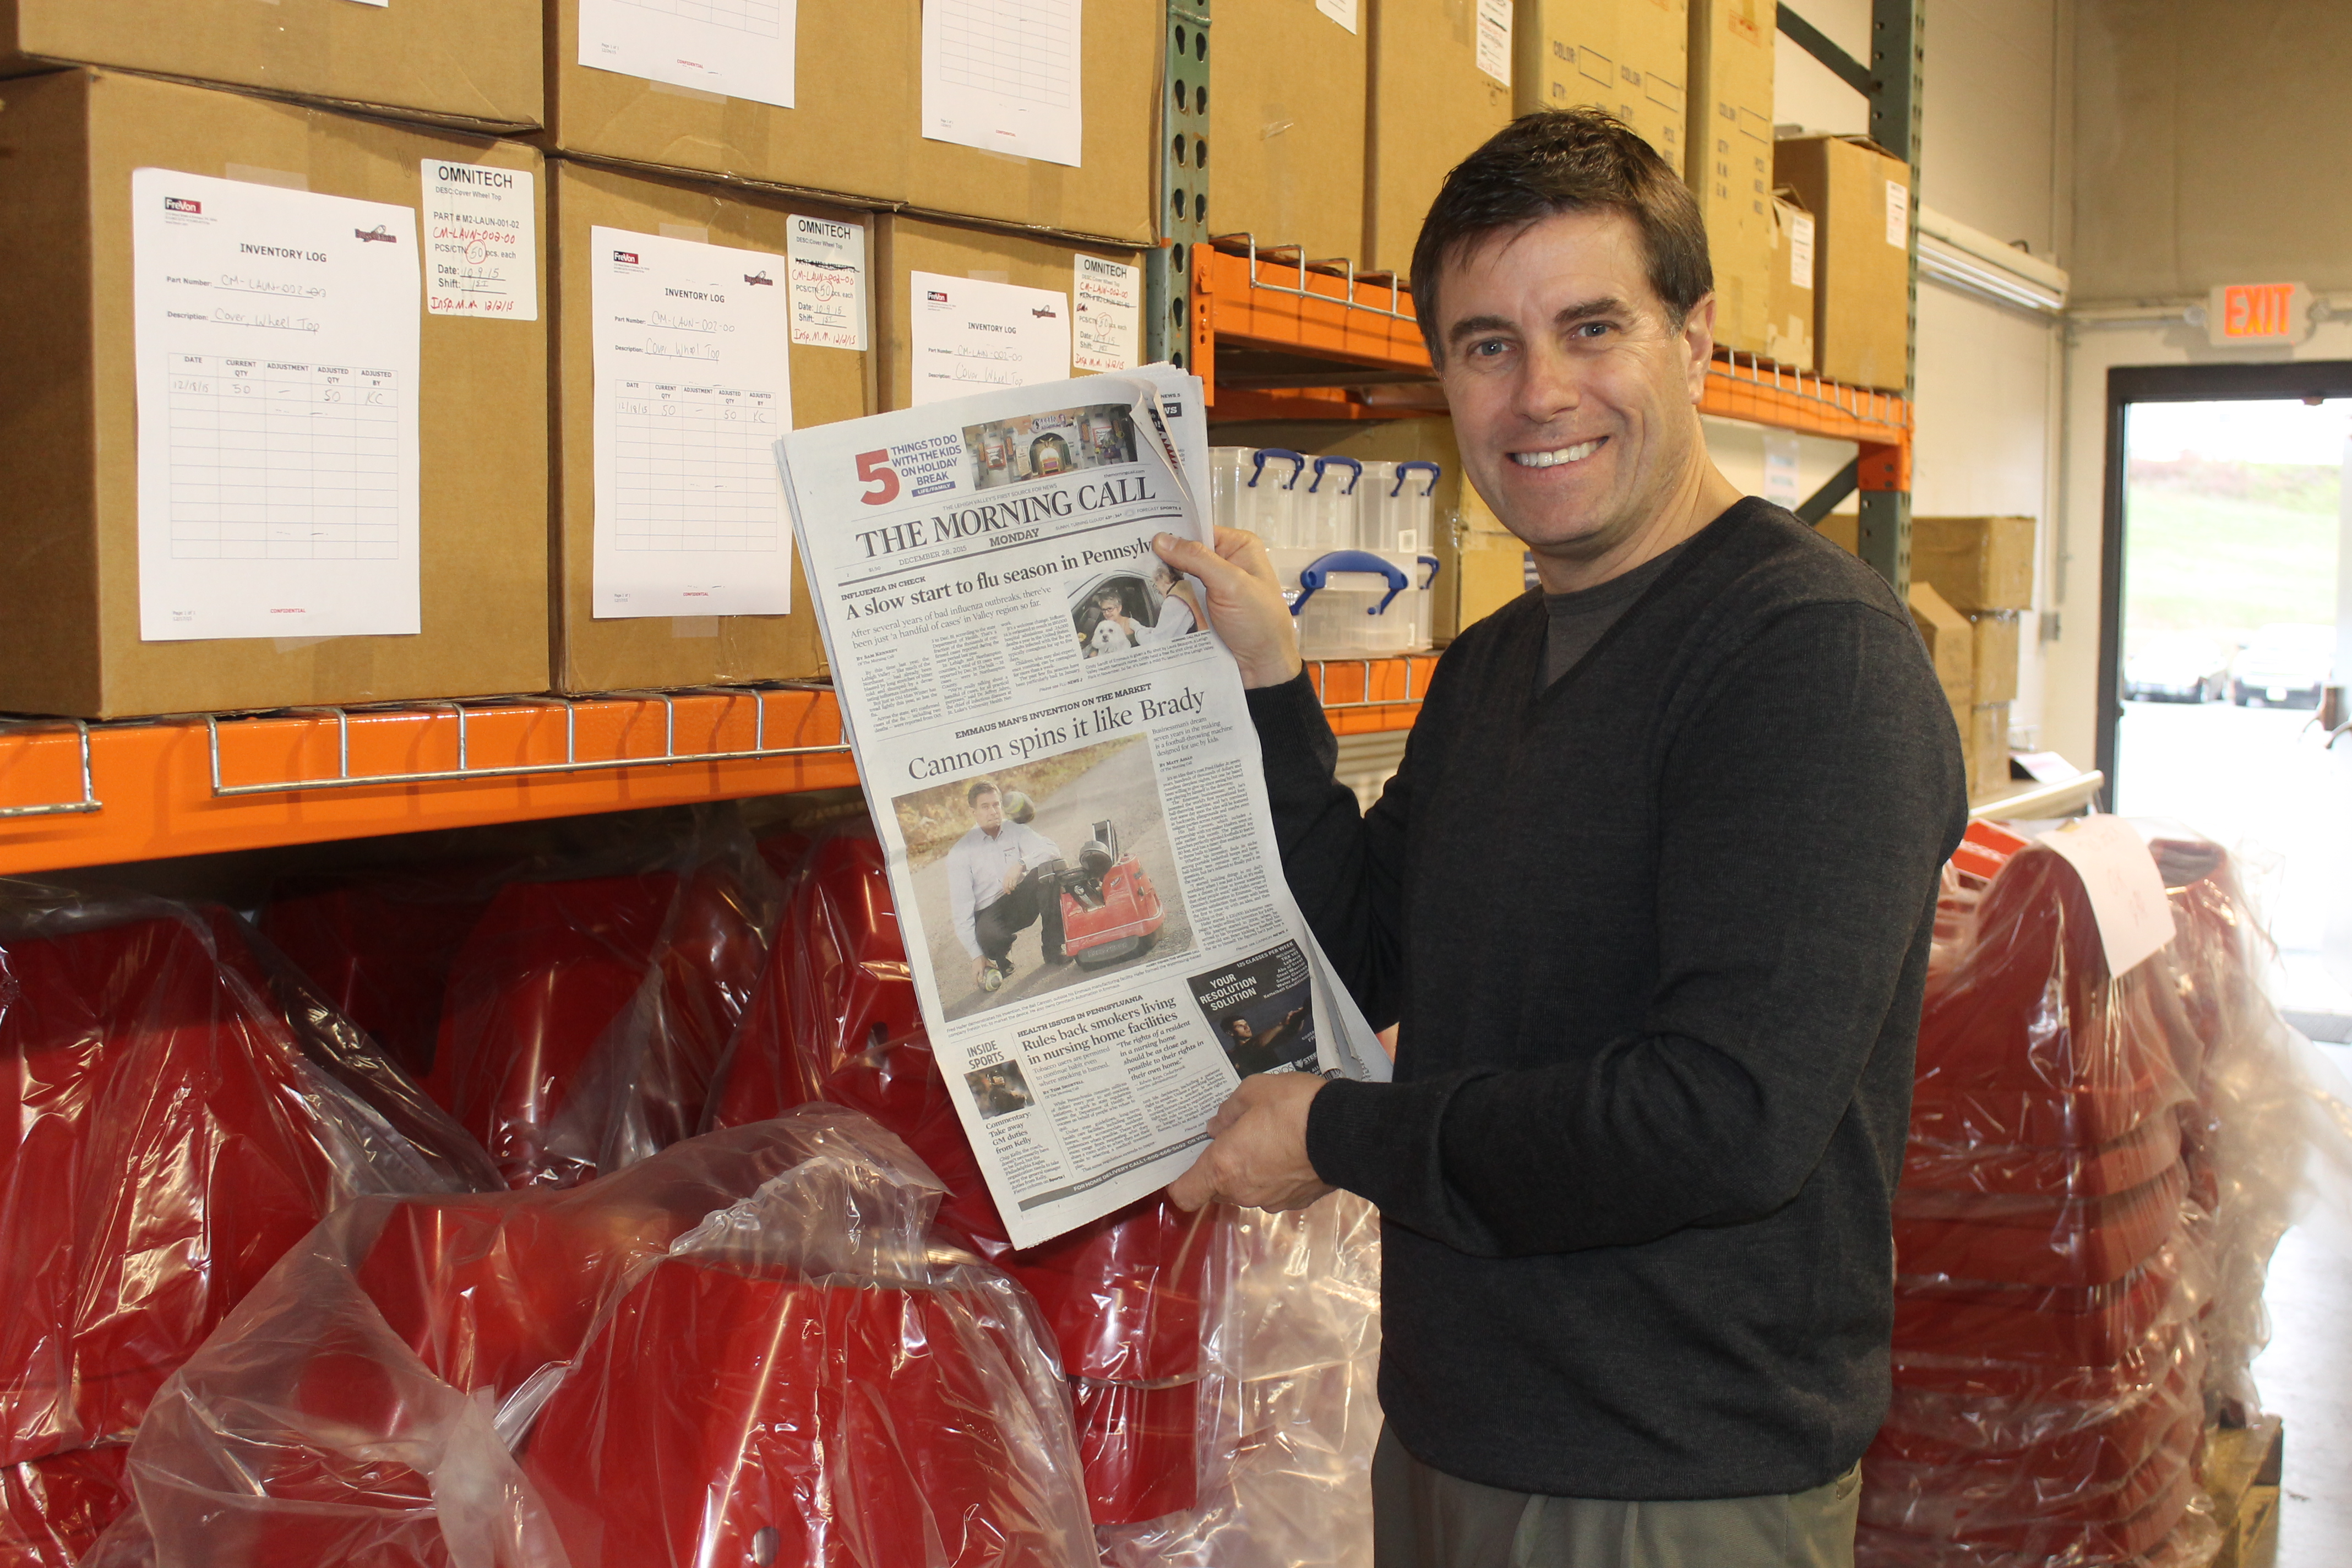 Fred Hafer, Jr. with our front page article in the Allentown Morning Call!